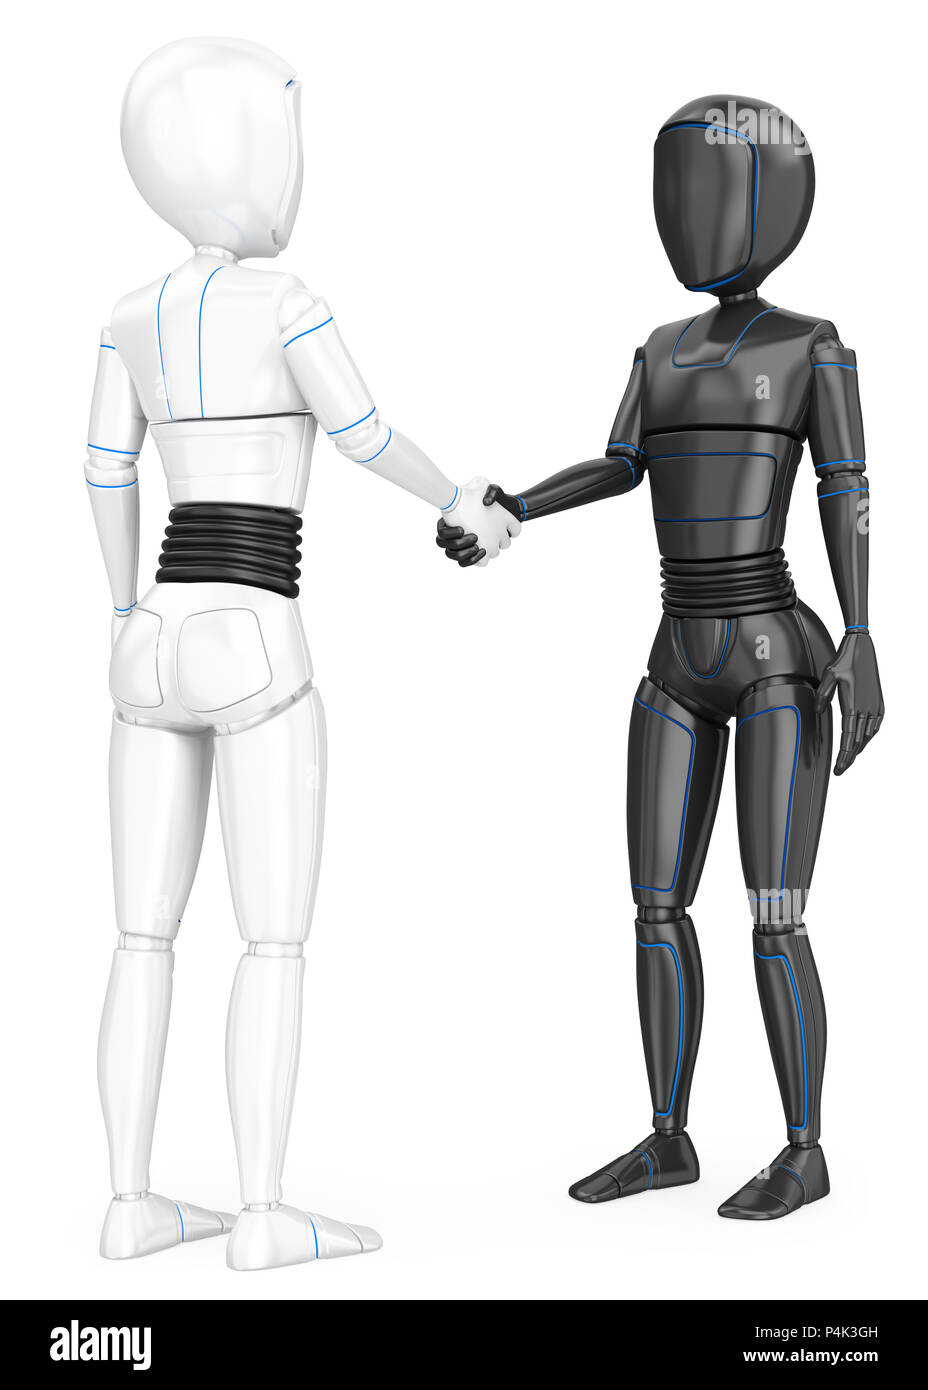 3d futuristic android illustration. Humanoid robot shaking hands with another robot. Isolated white background. - Stock Image